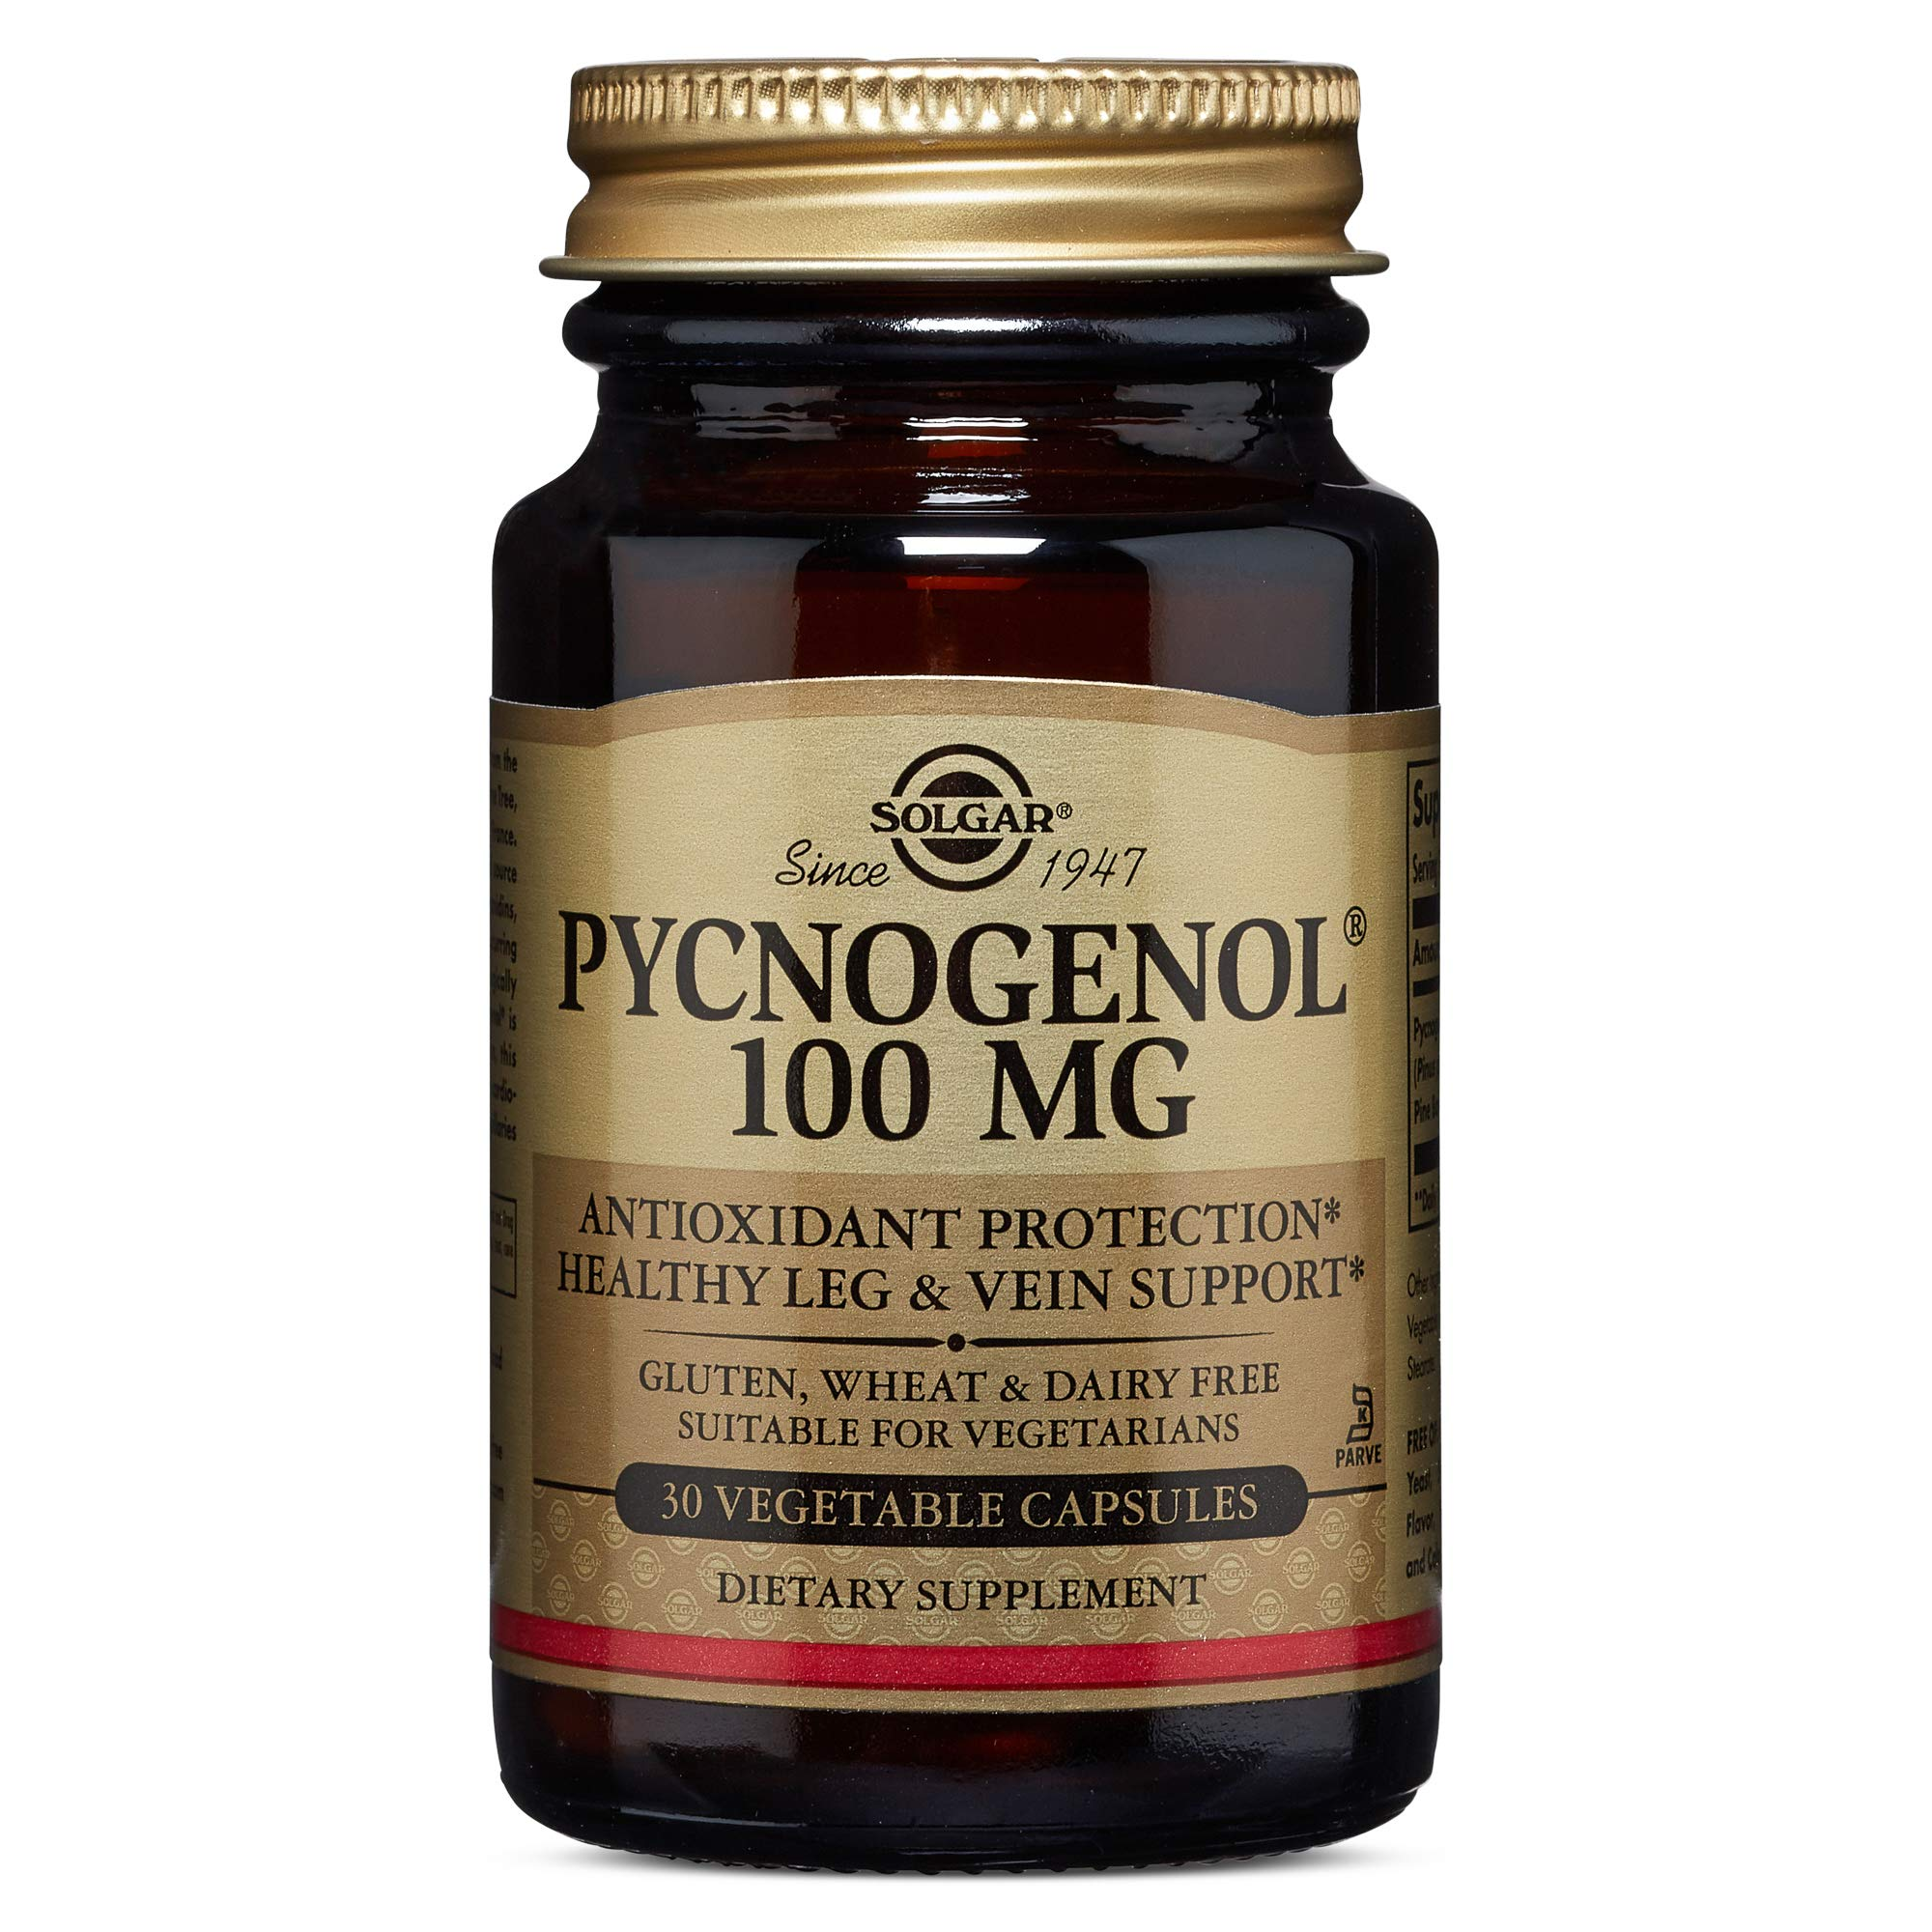 Solgar - Pycnogenol 100 mg, 30 Vegetable Capsules by Solgar